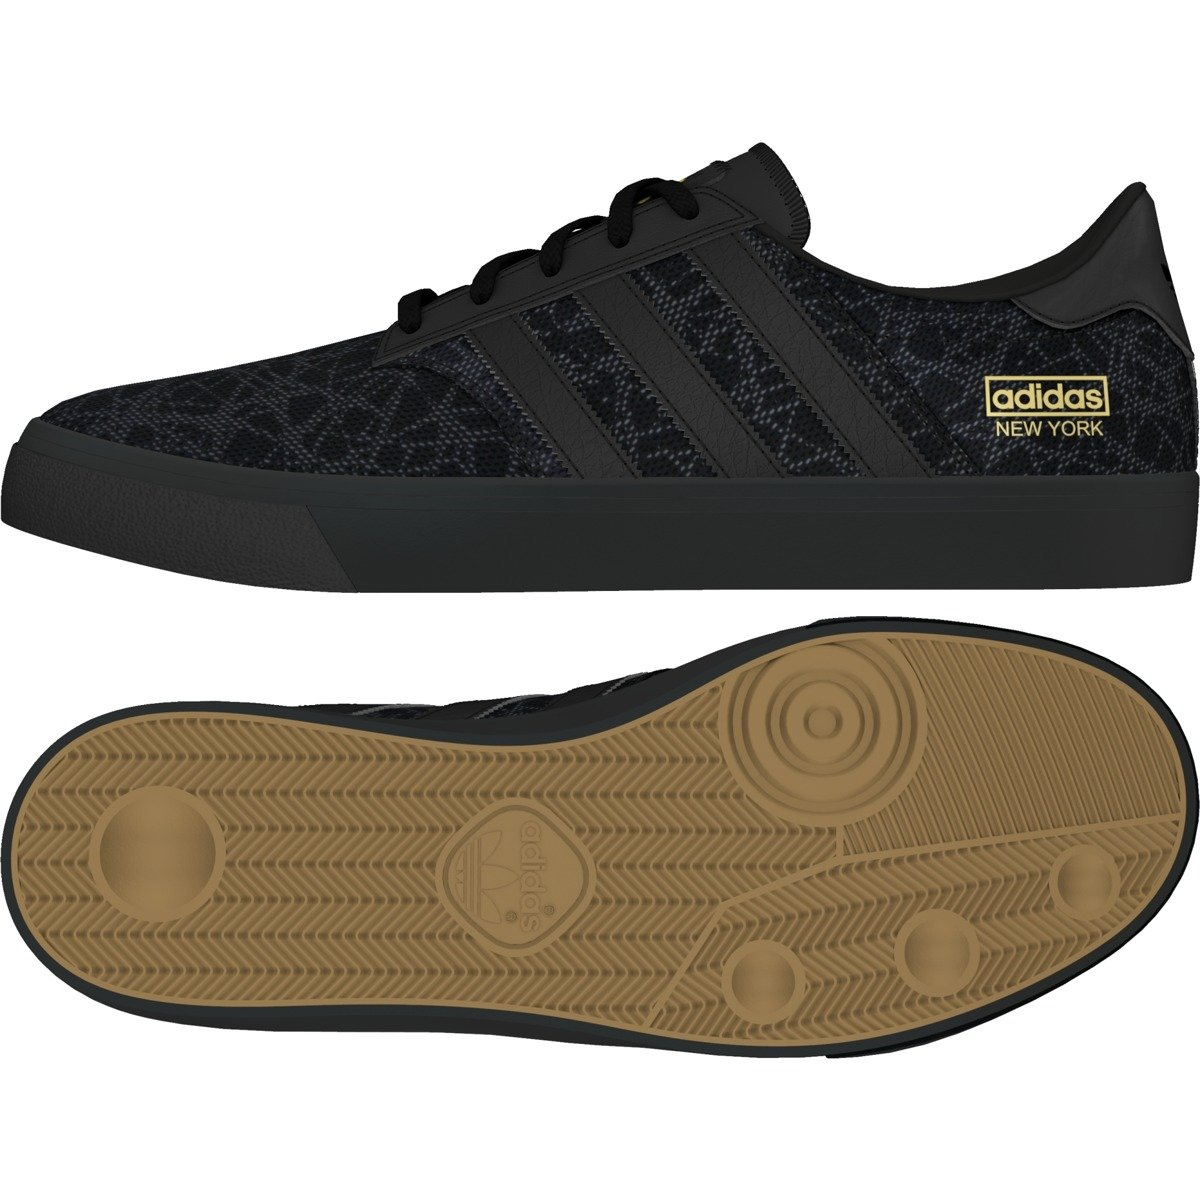 Seeley Premiere F37716 Adidas Premiere Seeley Chaussures Adidas k8wOnP0